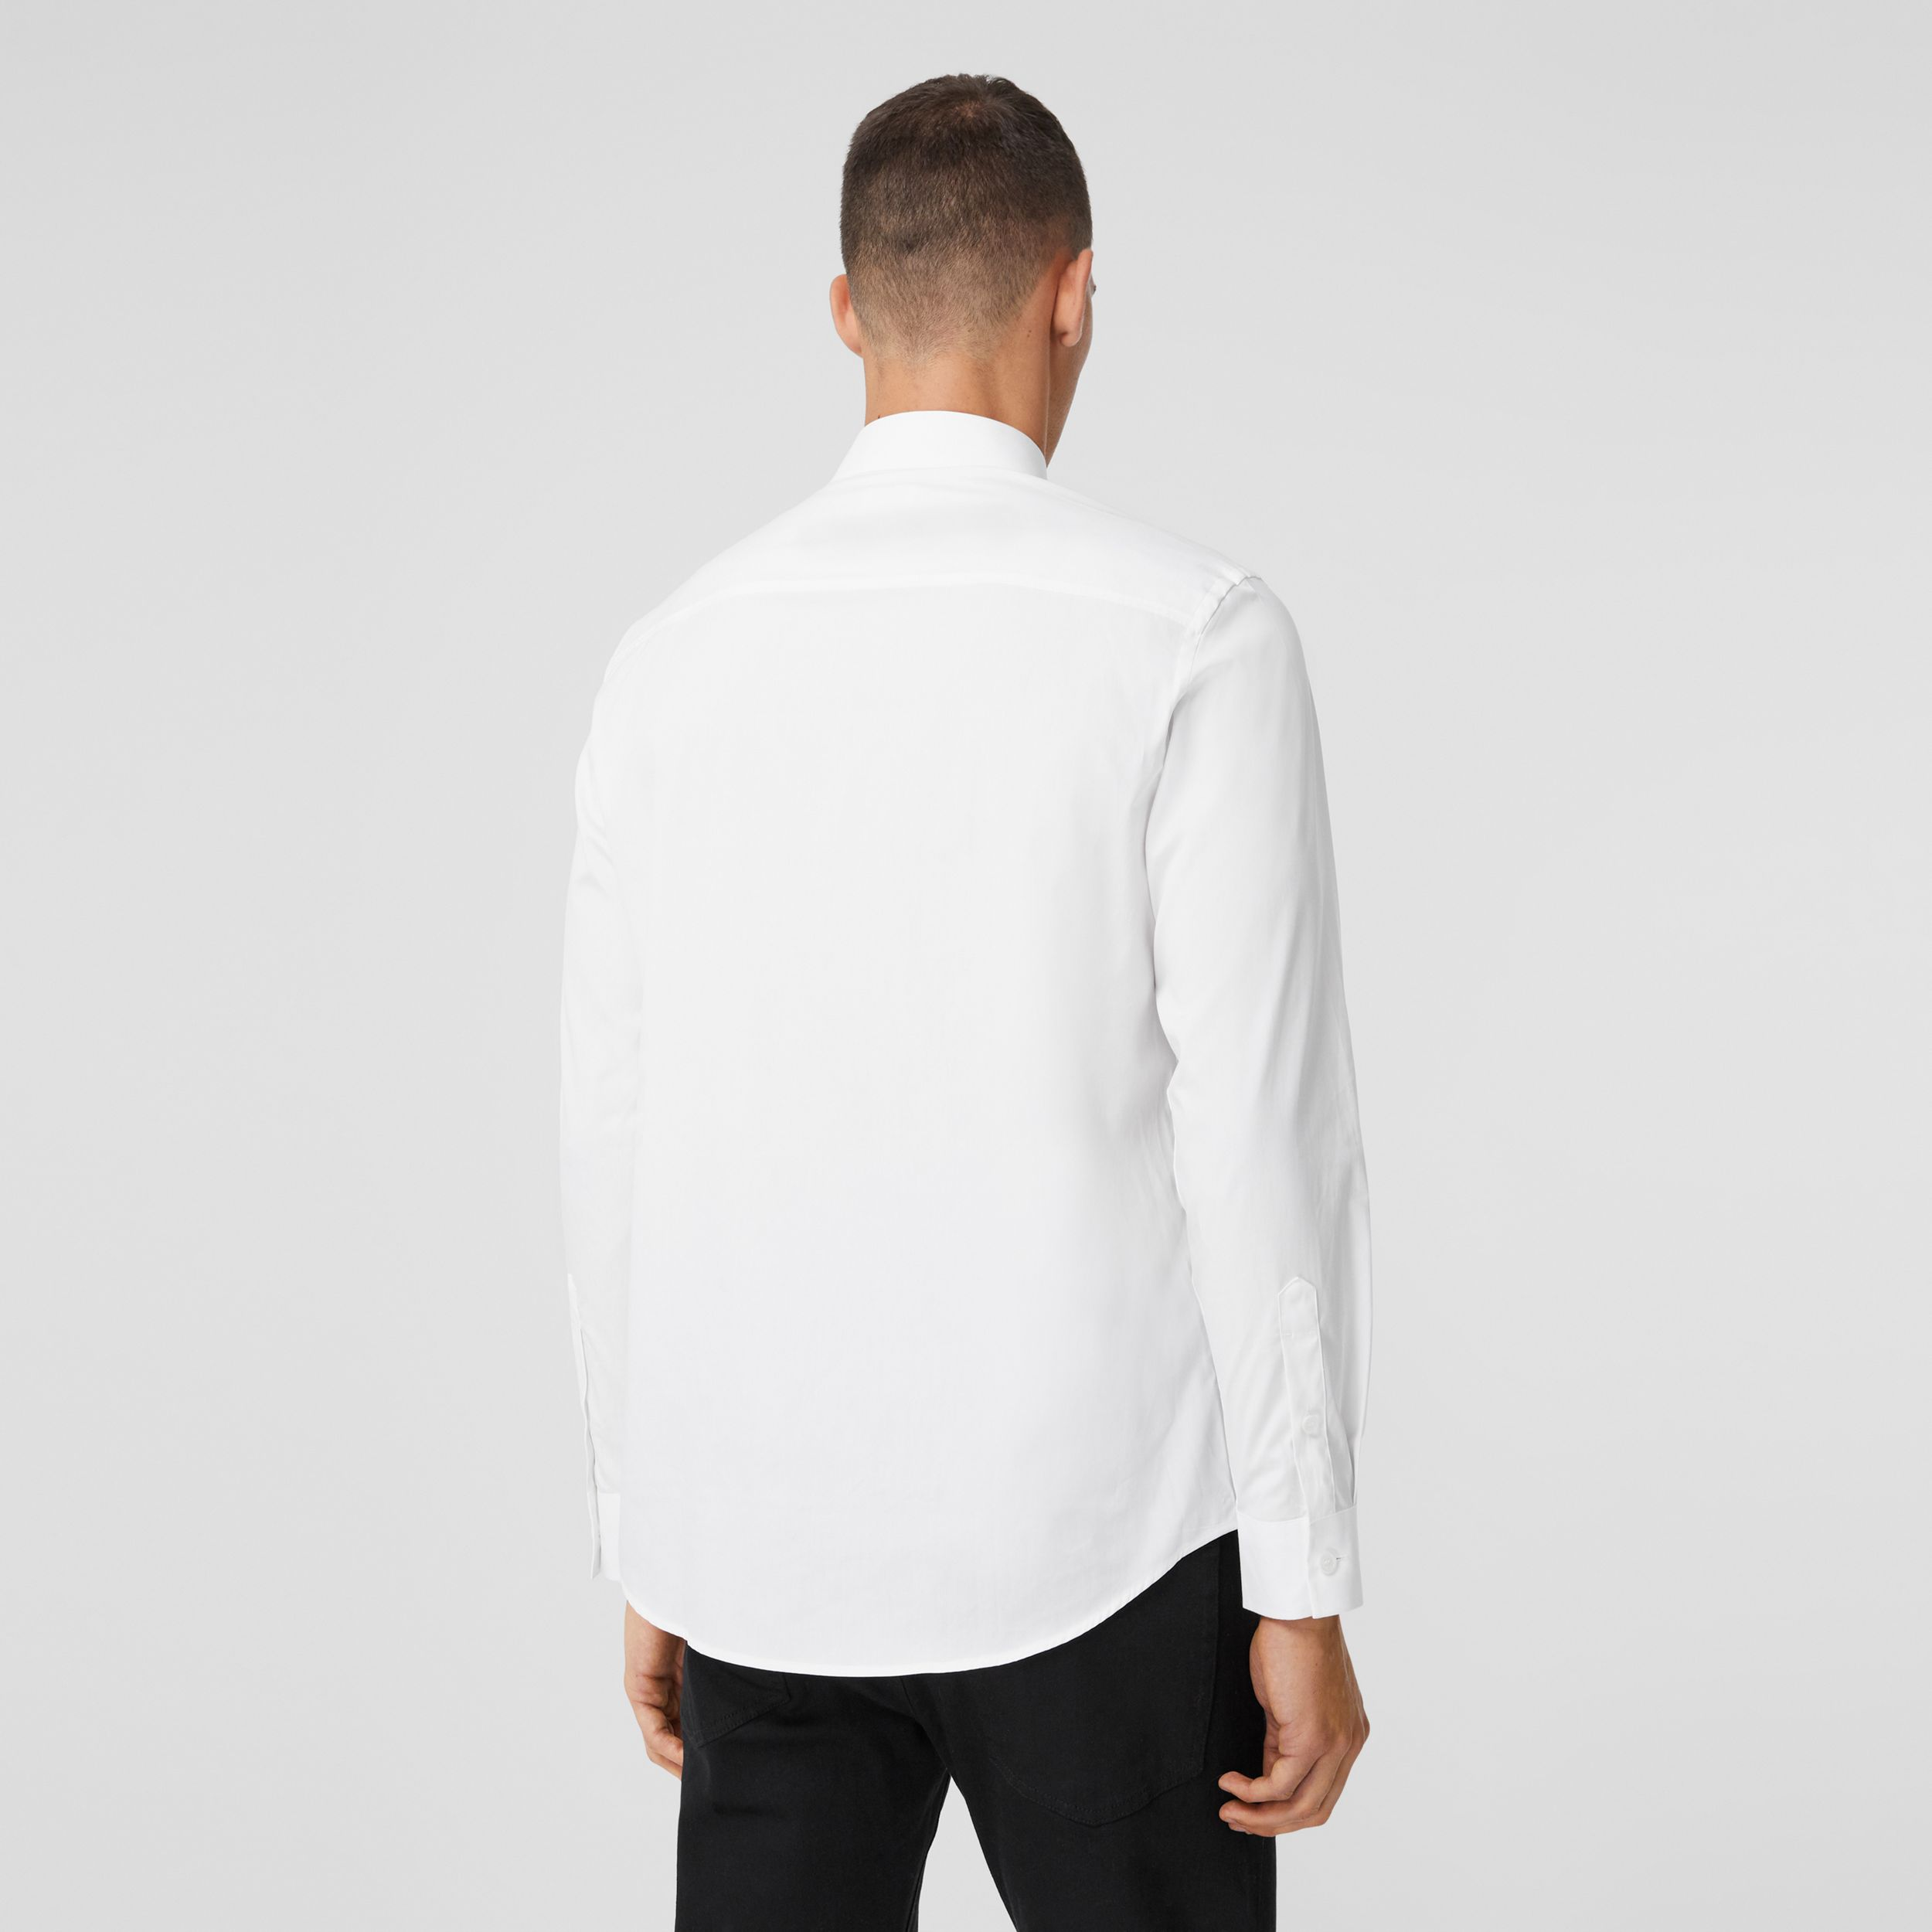 Monogrom Motif Stretch Cotton Poplin Shirt in White - Men | Burberry Australia - 3